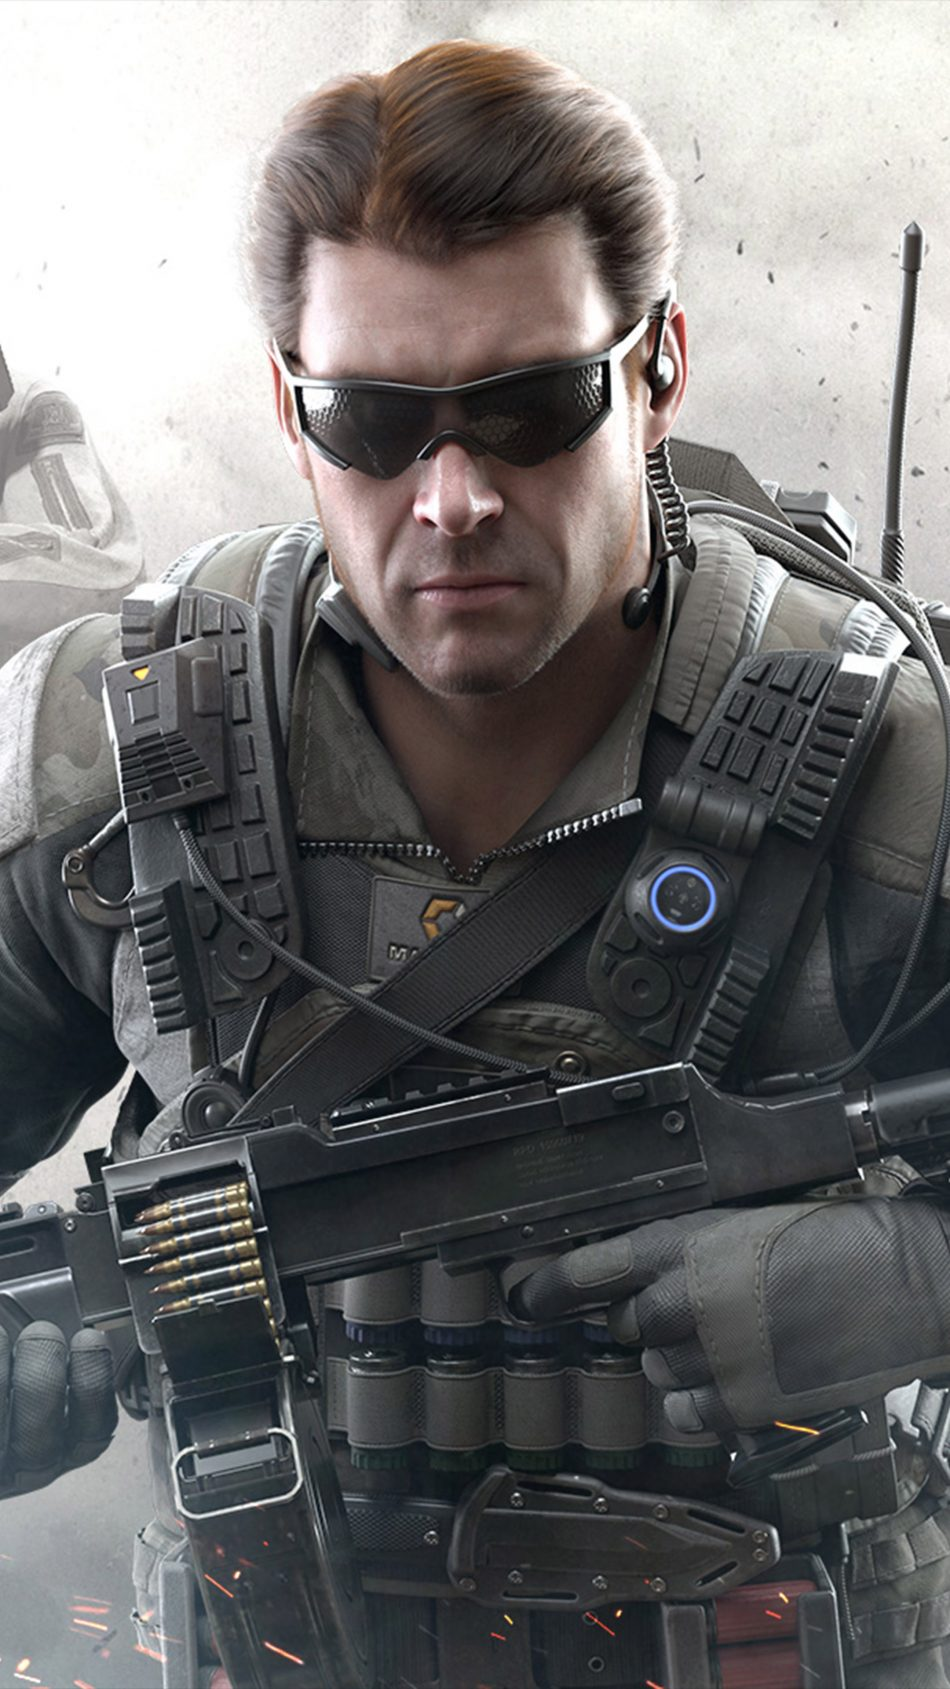 Soldier Call Of Duty Mobile 4k Ultra Hd Mobile Wallpaper